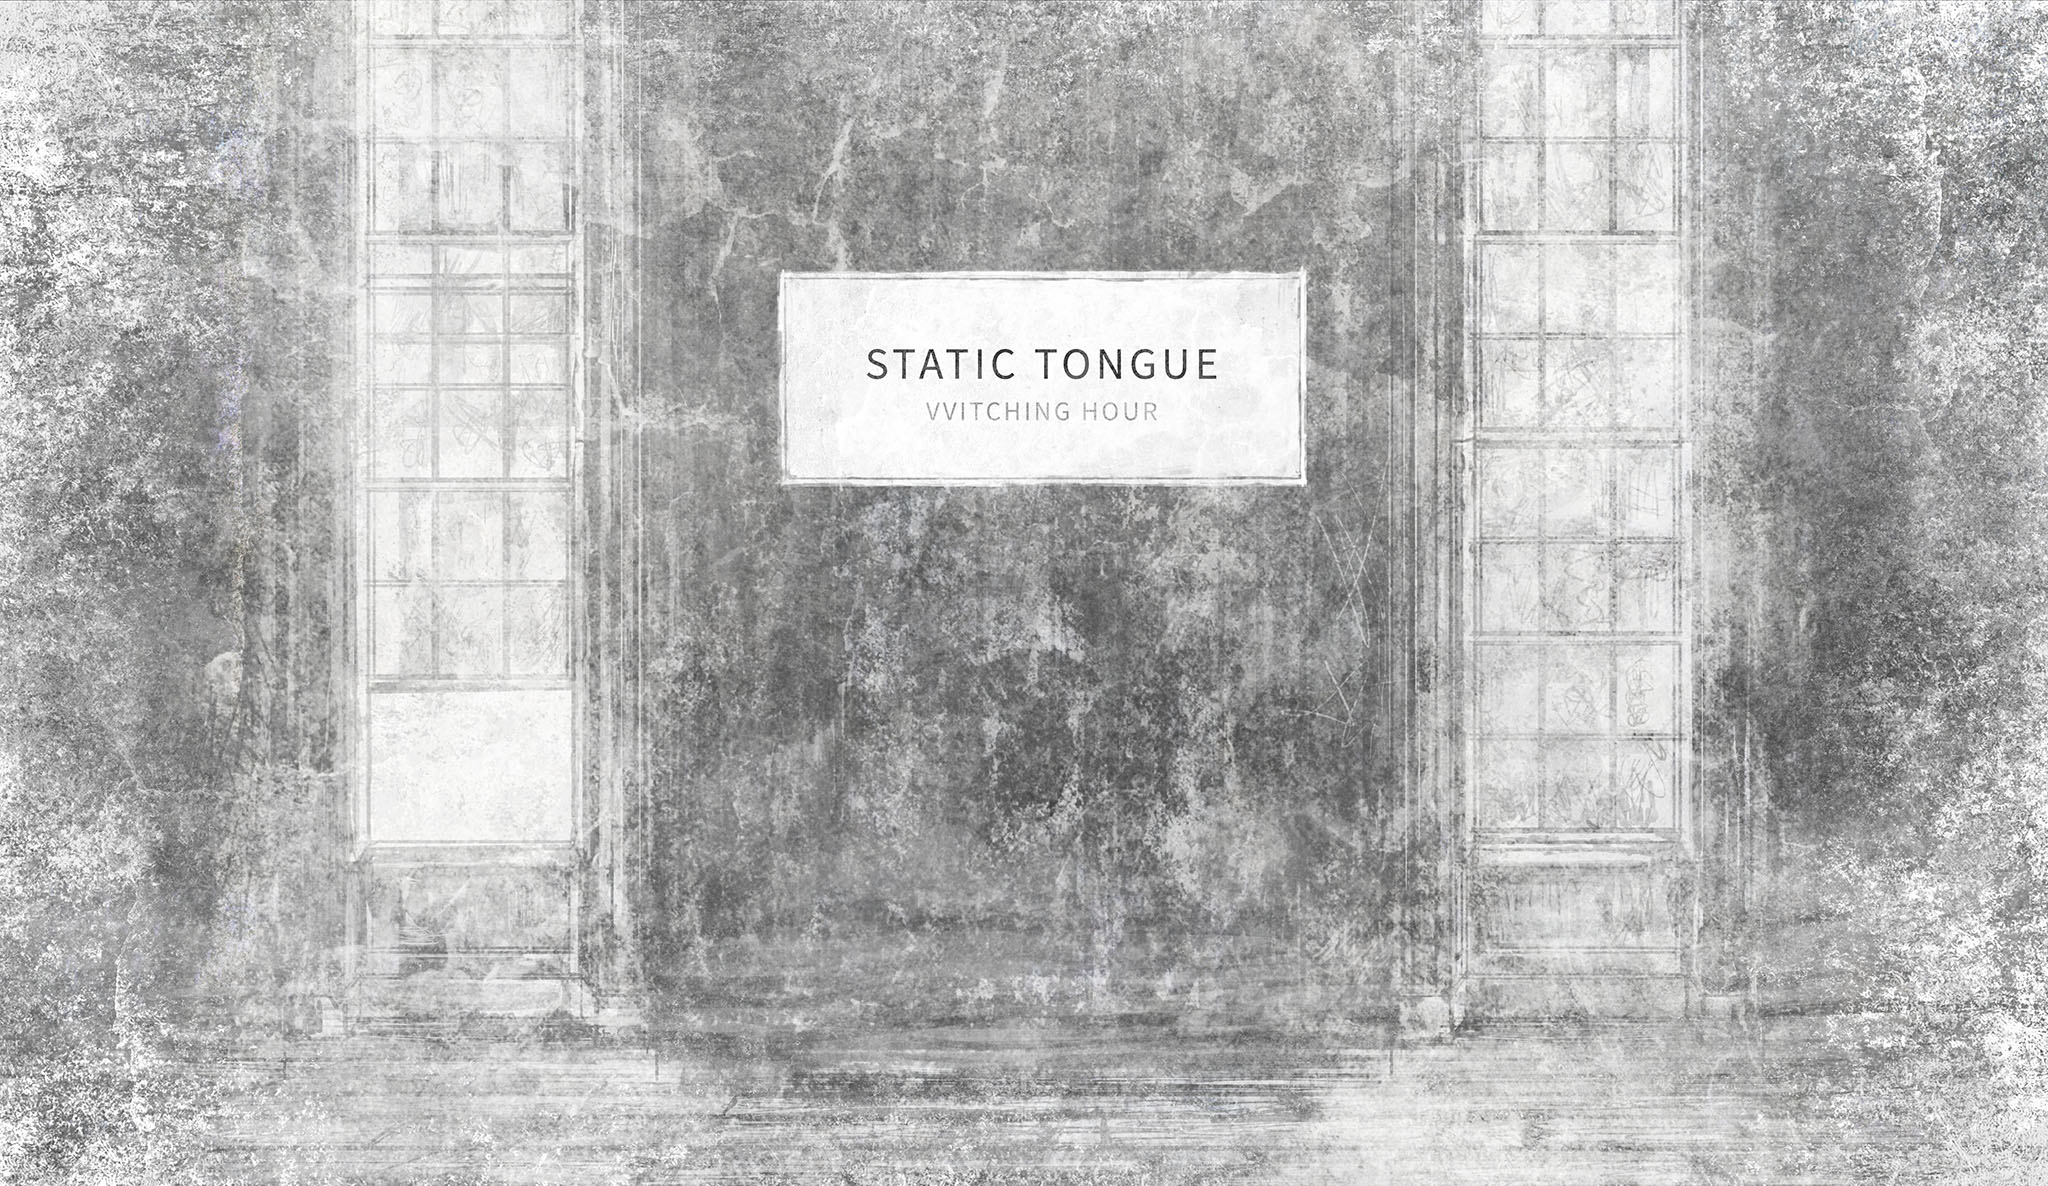 VVitching Hour: Static Tongue